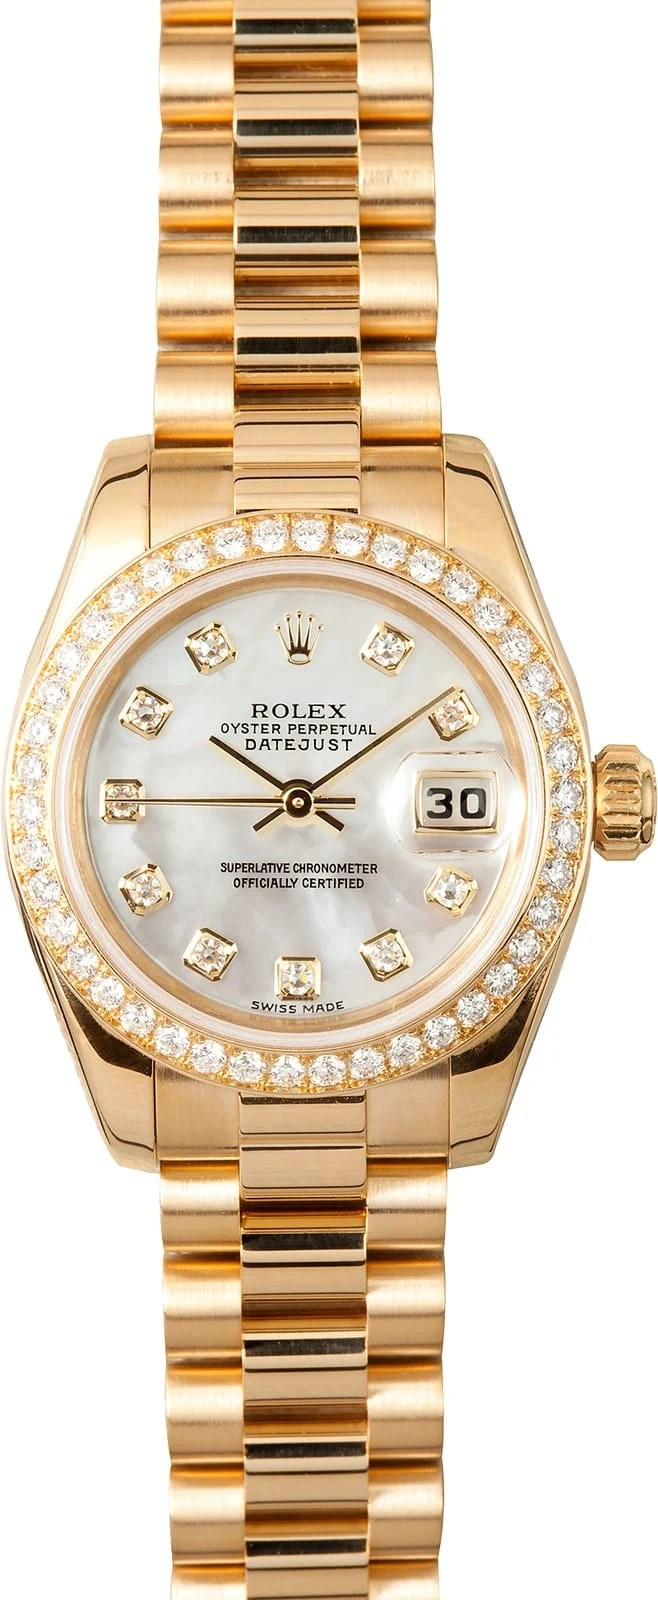 Cellini Watch Ladies Gold Rolex President 179138 - Save Up To 50% Off